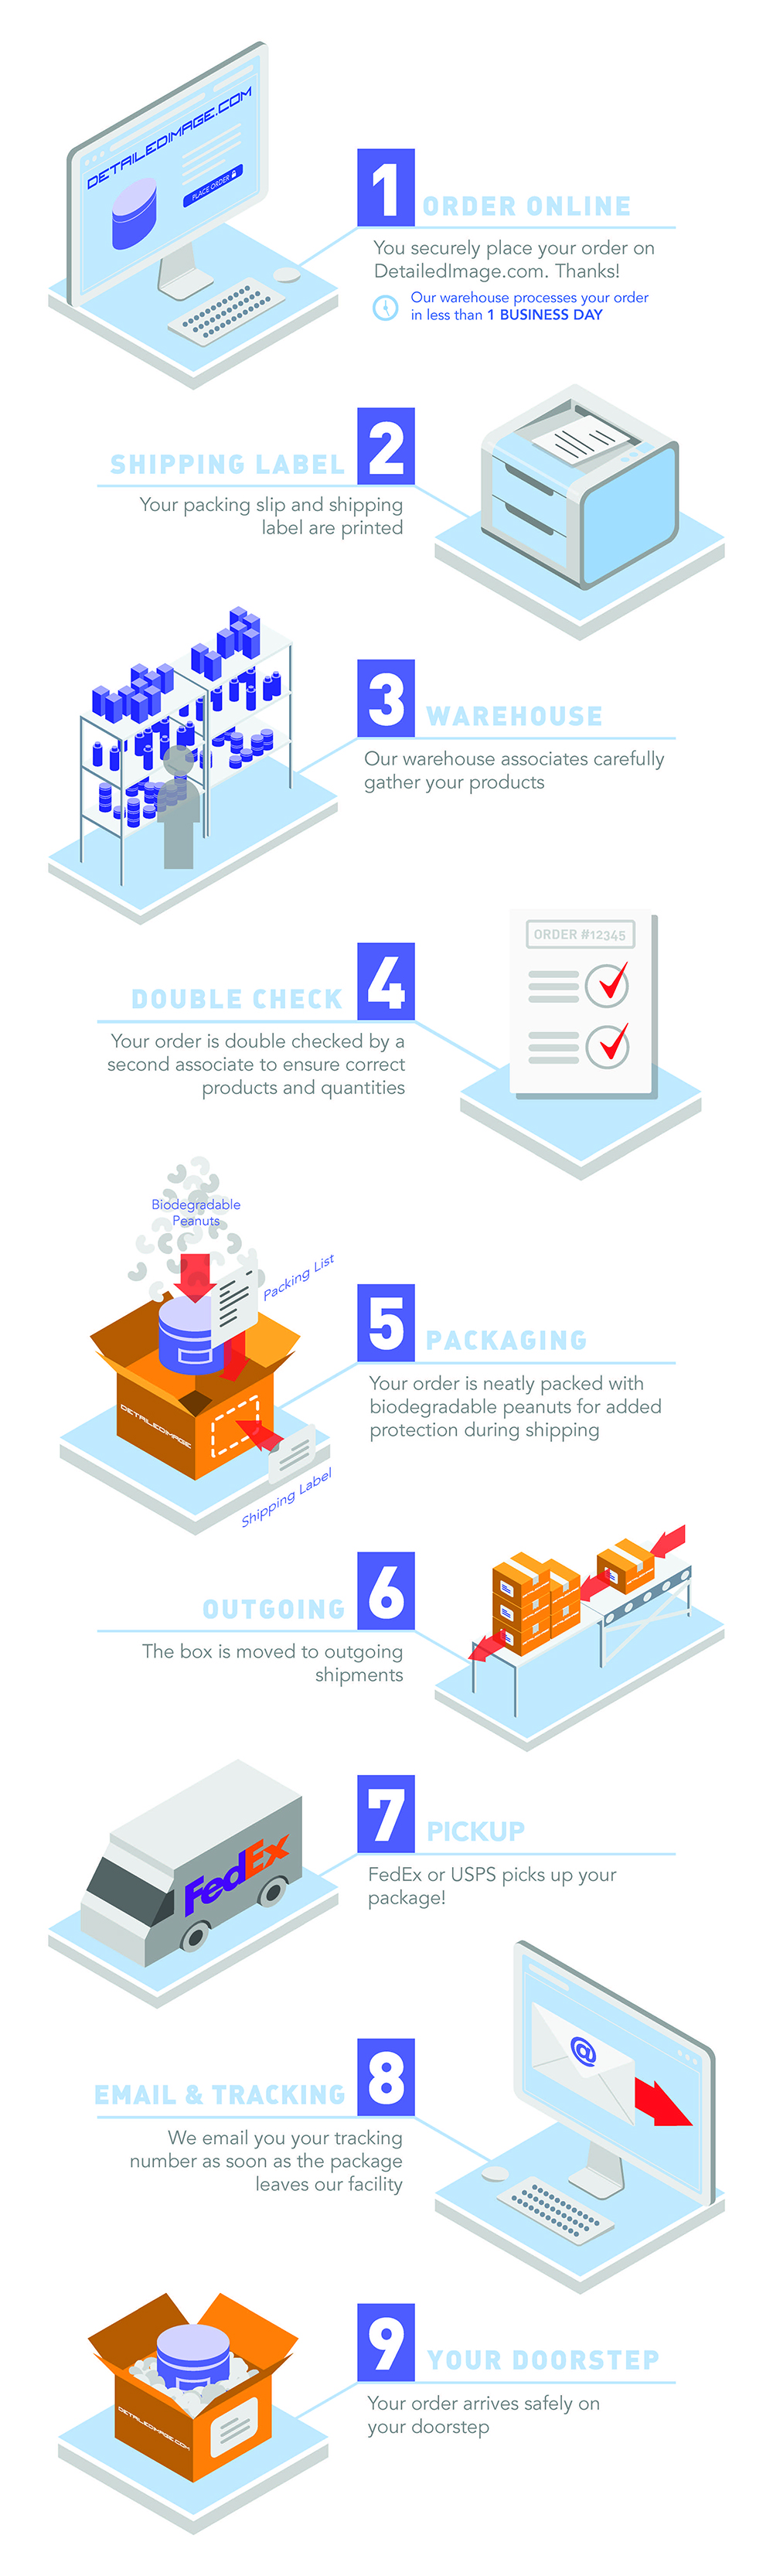 Detailed Image Ordering Process Infographic